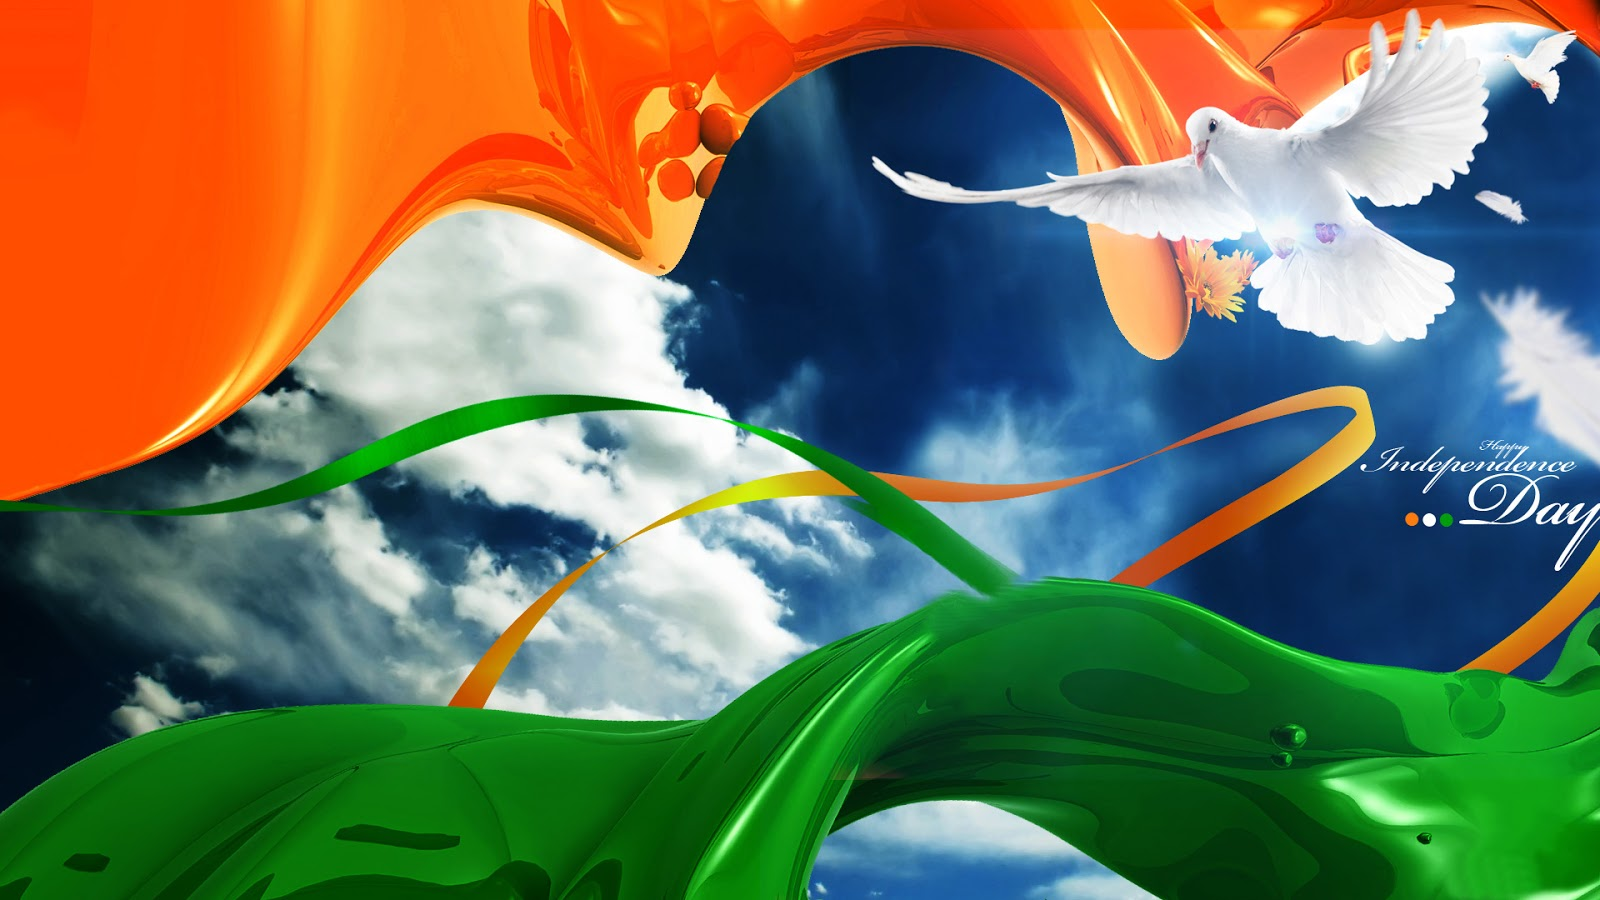 Indian Flag Hd Wallpaper 1080p: Painting Of Indian Flag WallpaperWallpaper Background